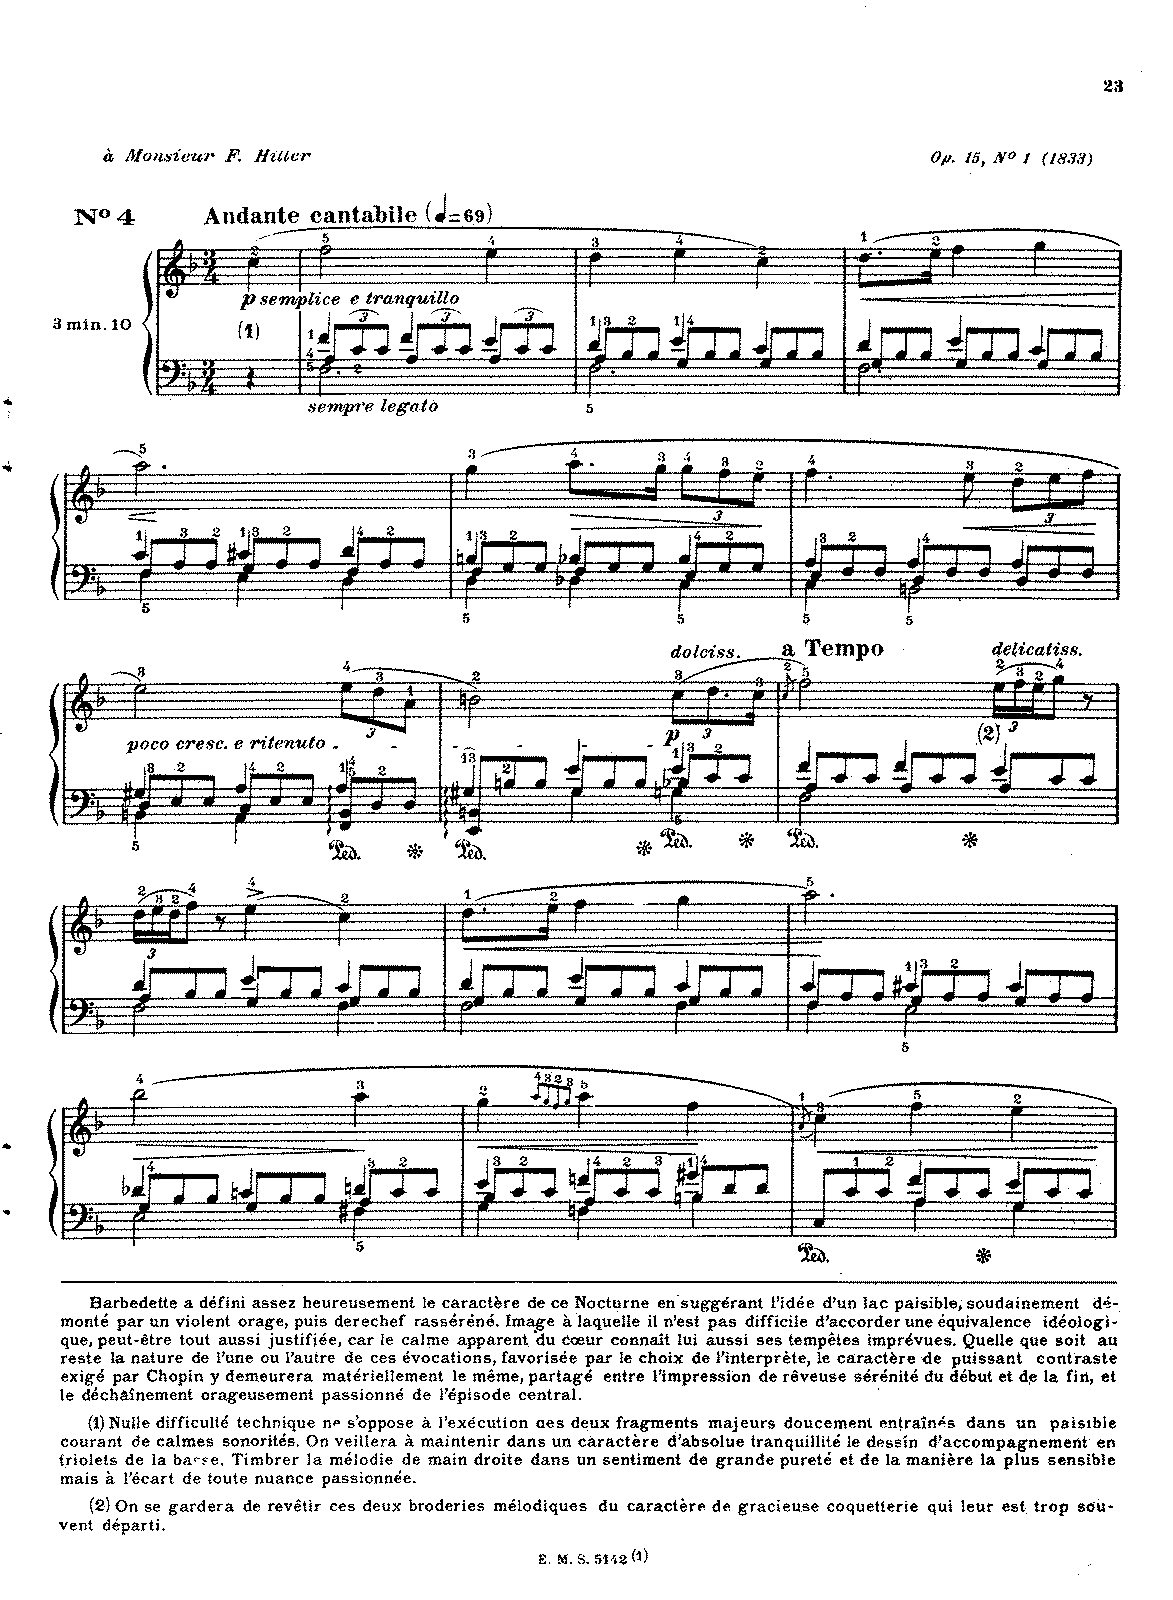 Nocturnes op15 chopin frdric imslppetrucci music library nocturnes op15 chopin frdric imslppetrucci music library free public domain sheet music hexwebz Images